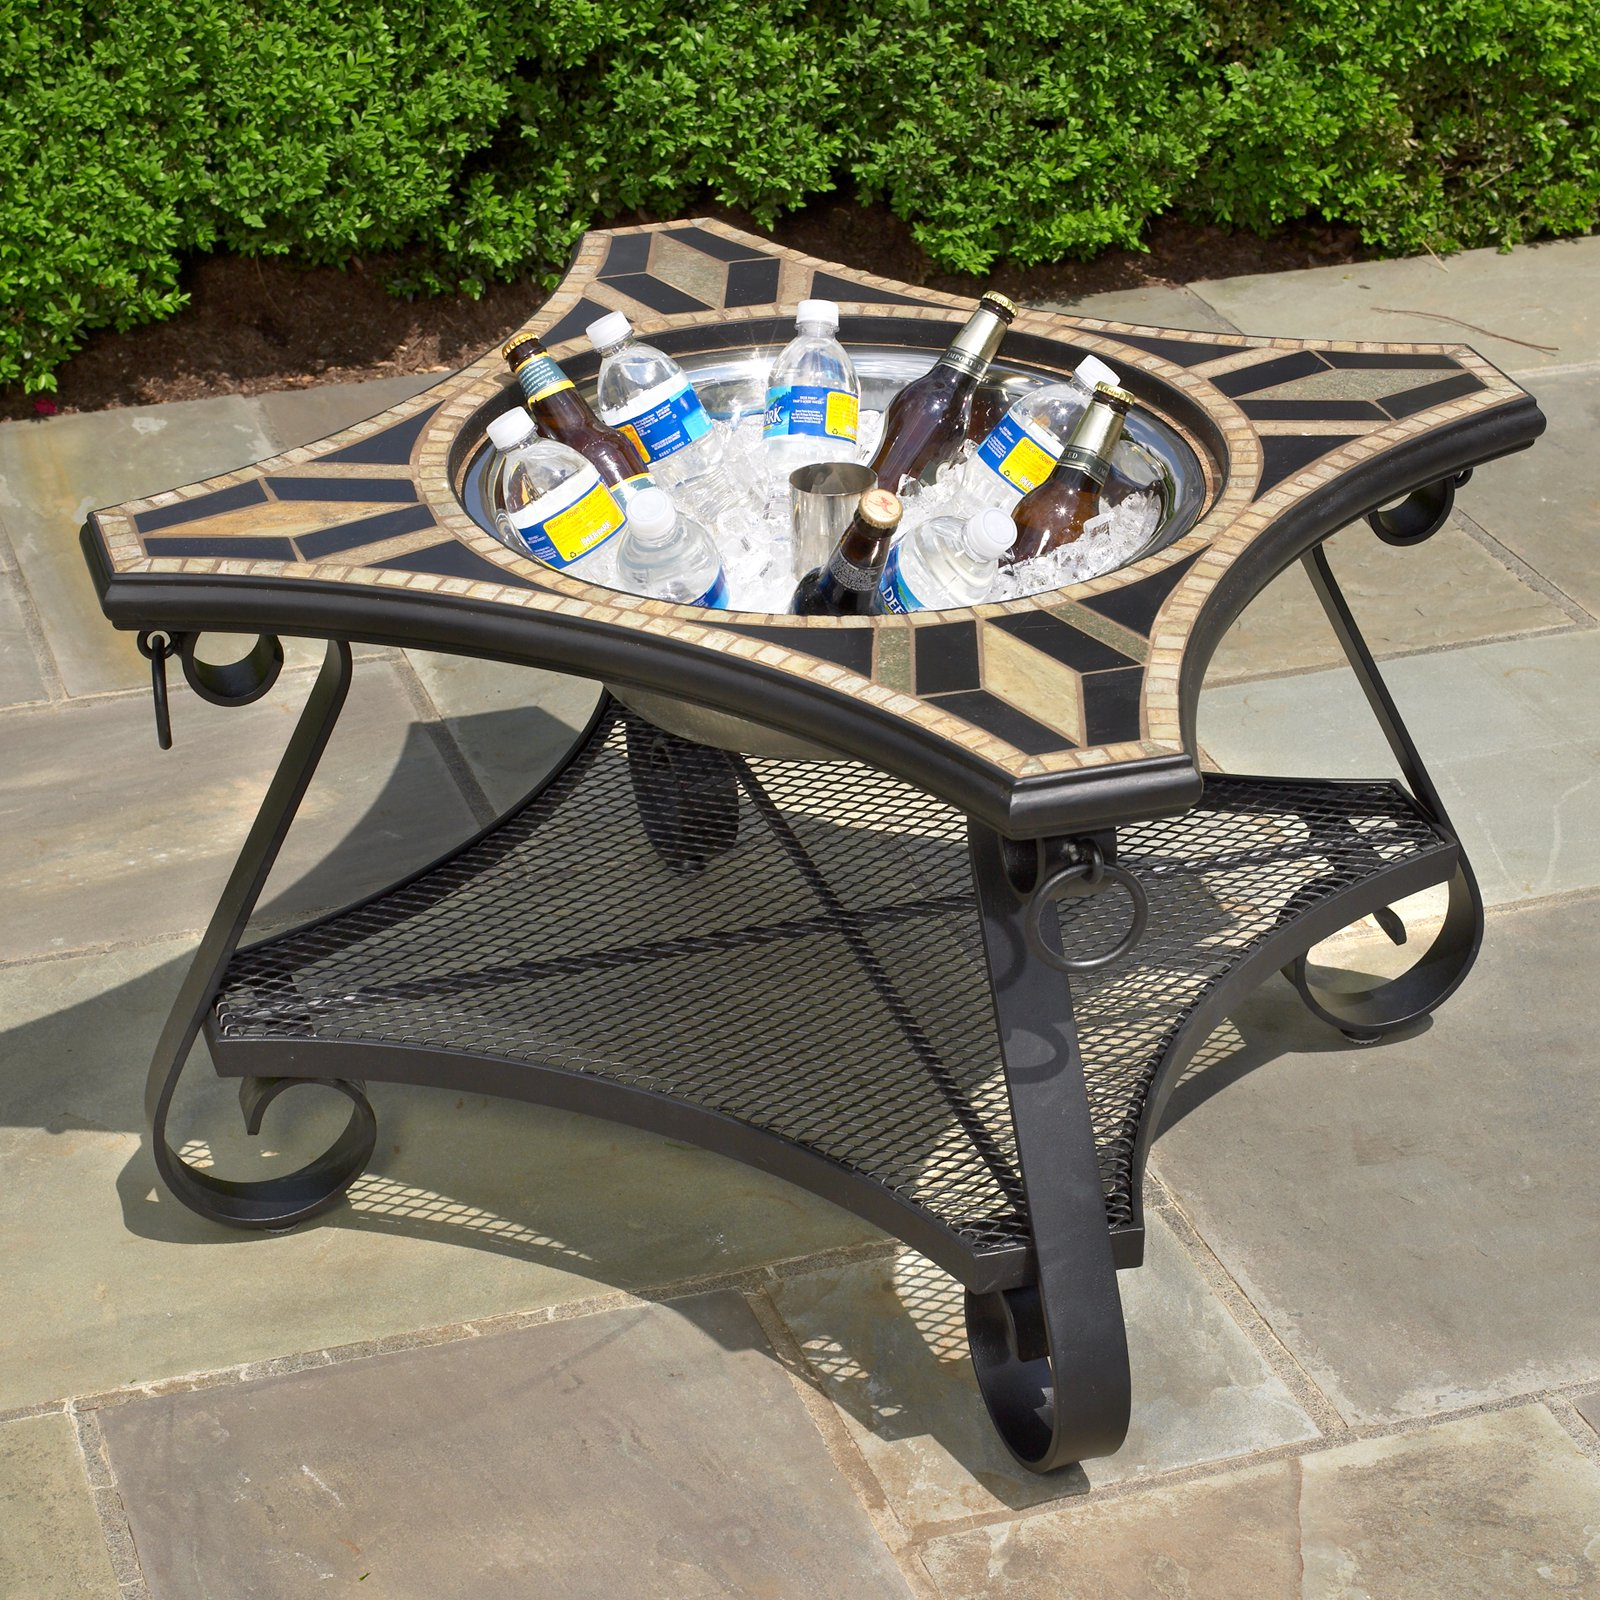 fire pit cooler table pits elegants and comfort all outdoor patio furniture for side with seasons your mccmatricschool pottery barn kitchen sets bags dale tiffany glass hammered